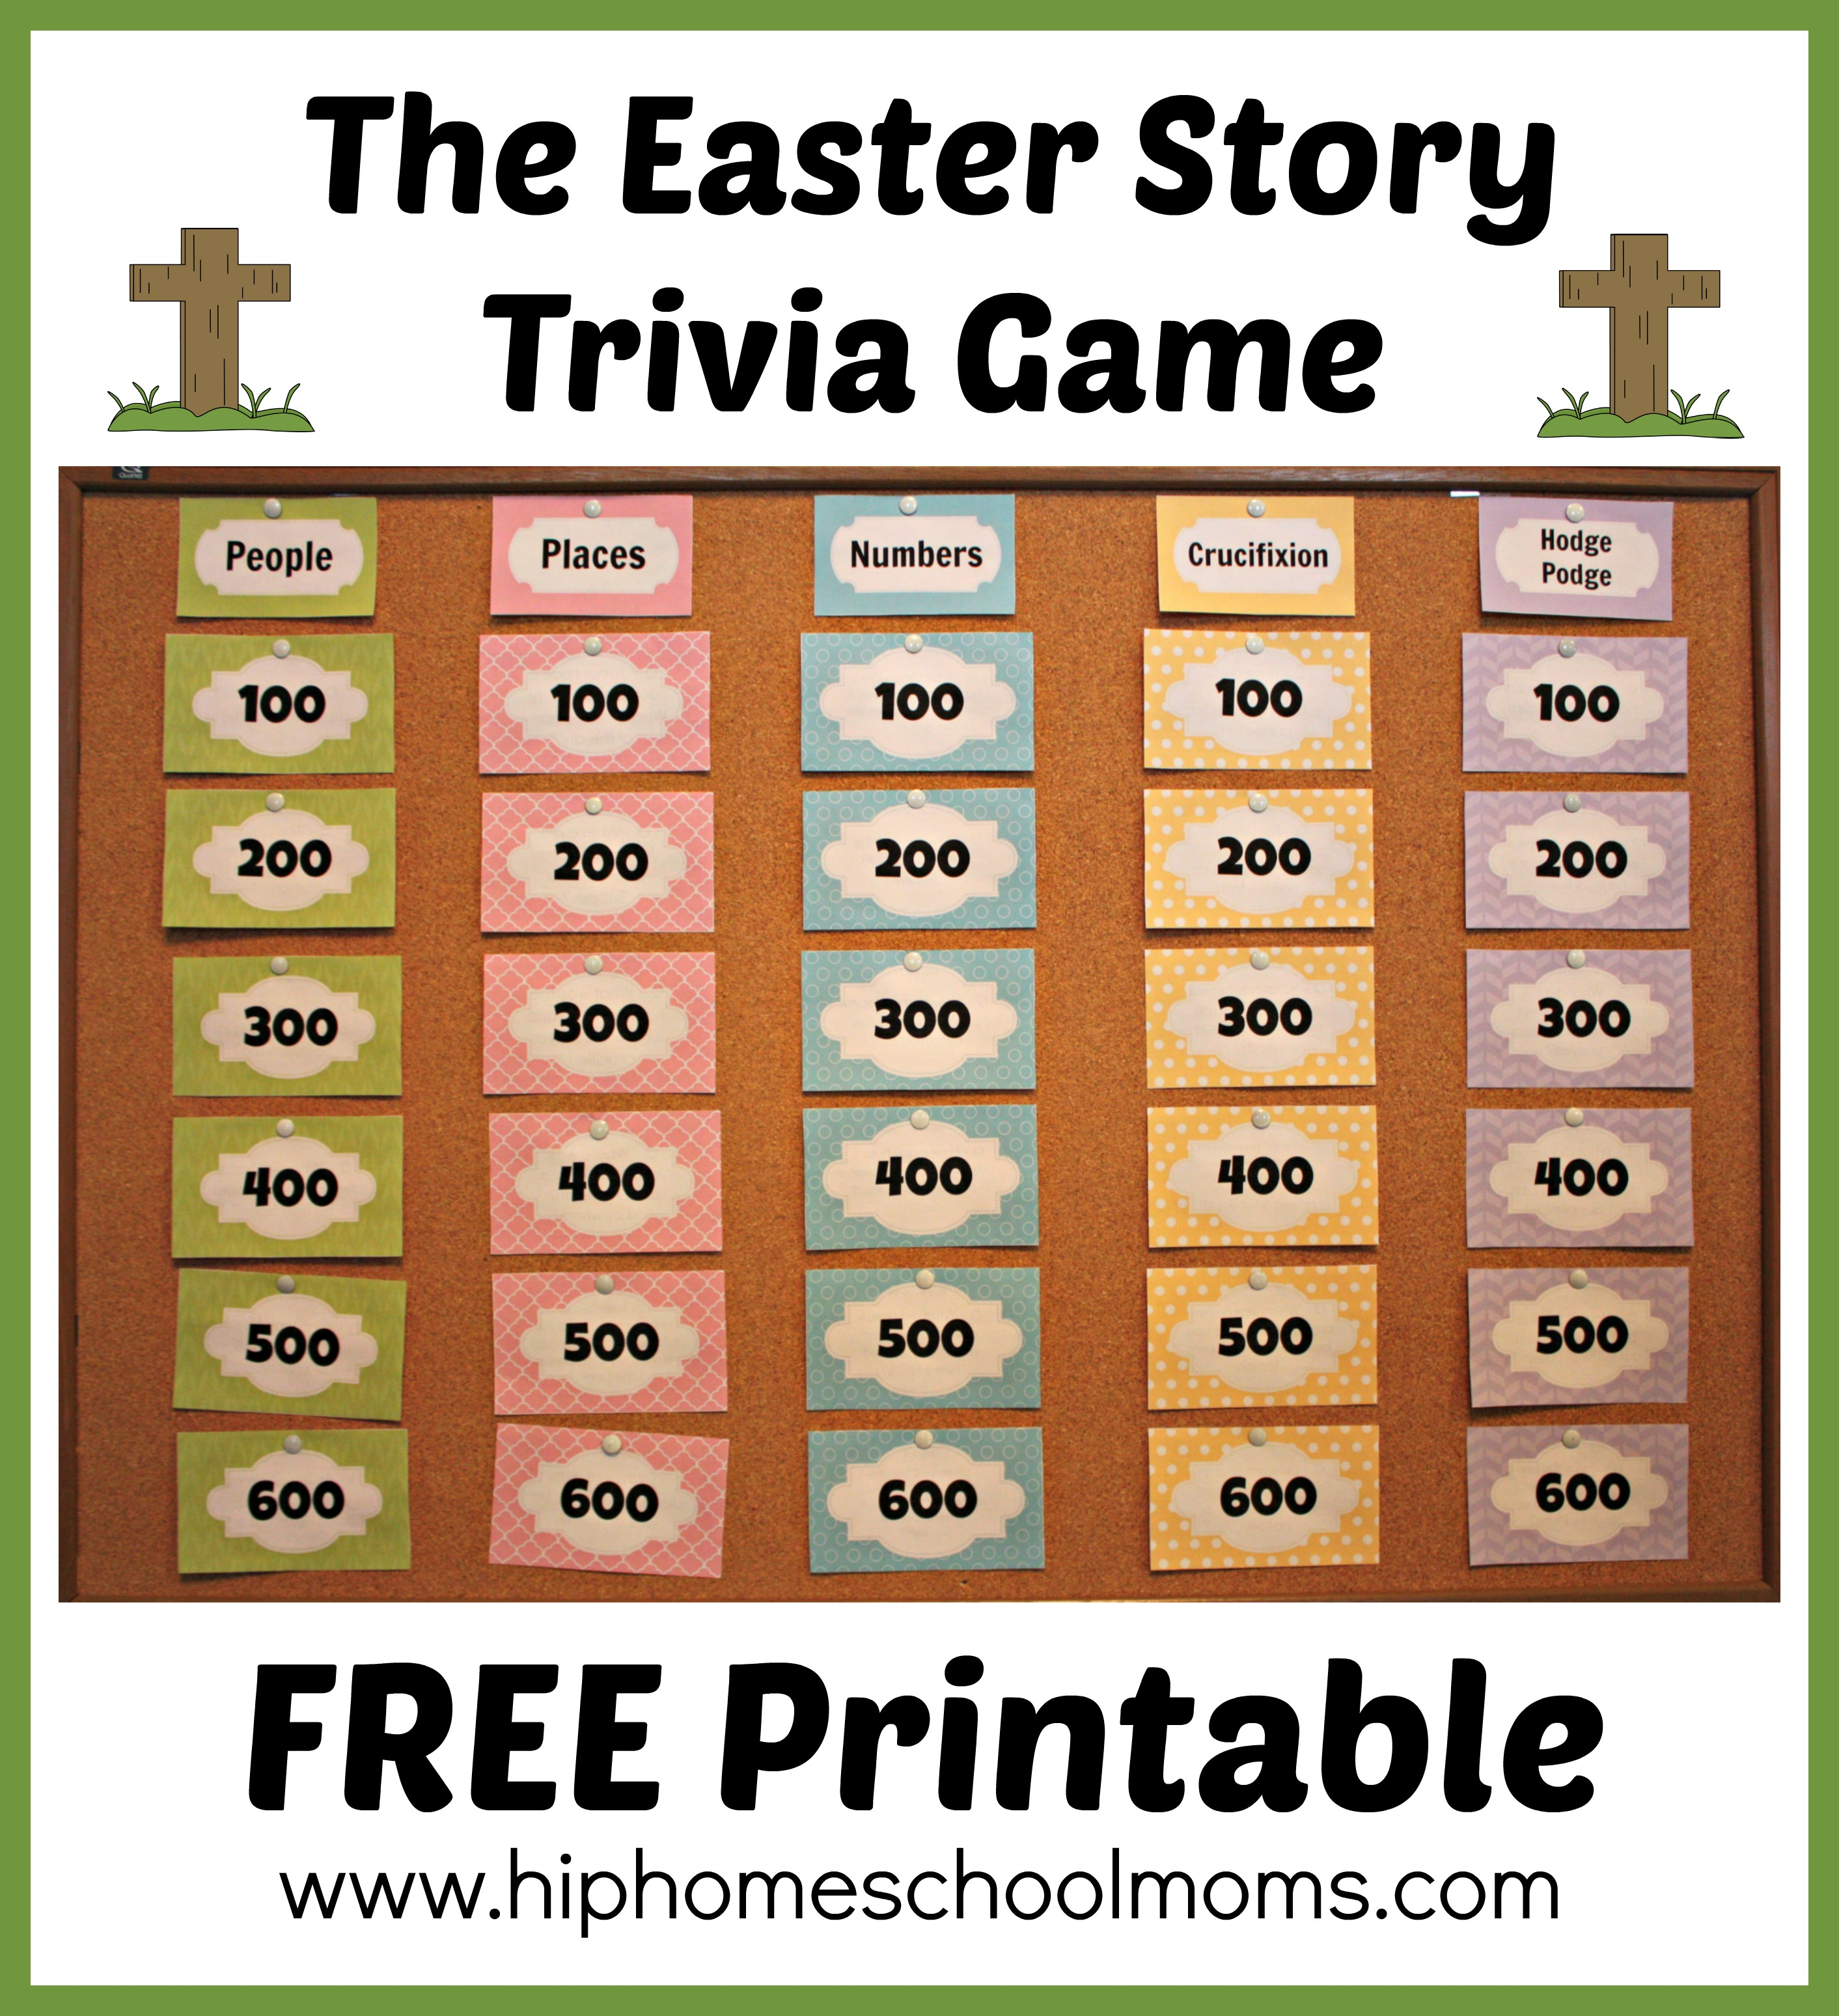 picture regarding Printable Bible Jeopardy Questions and Answers named Printable Easter Tale Trivia Recreation Hip Homeschool Mothers